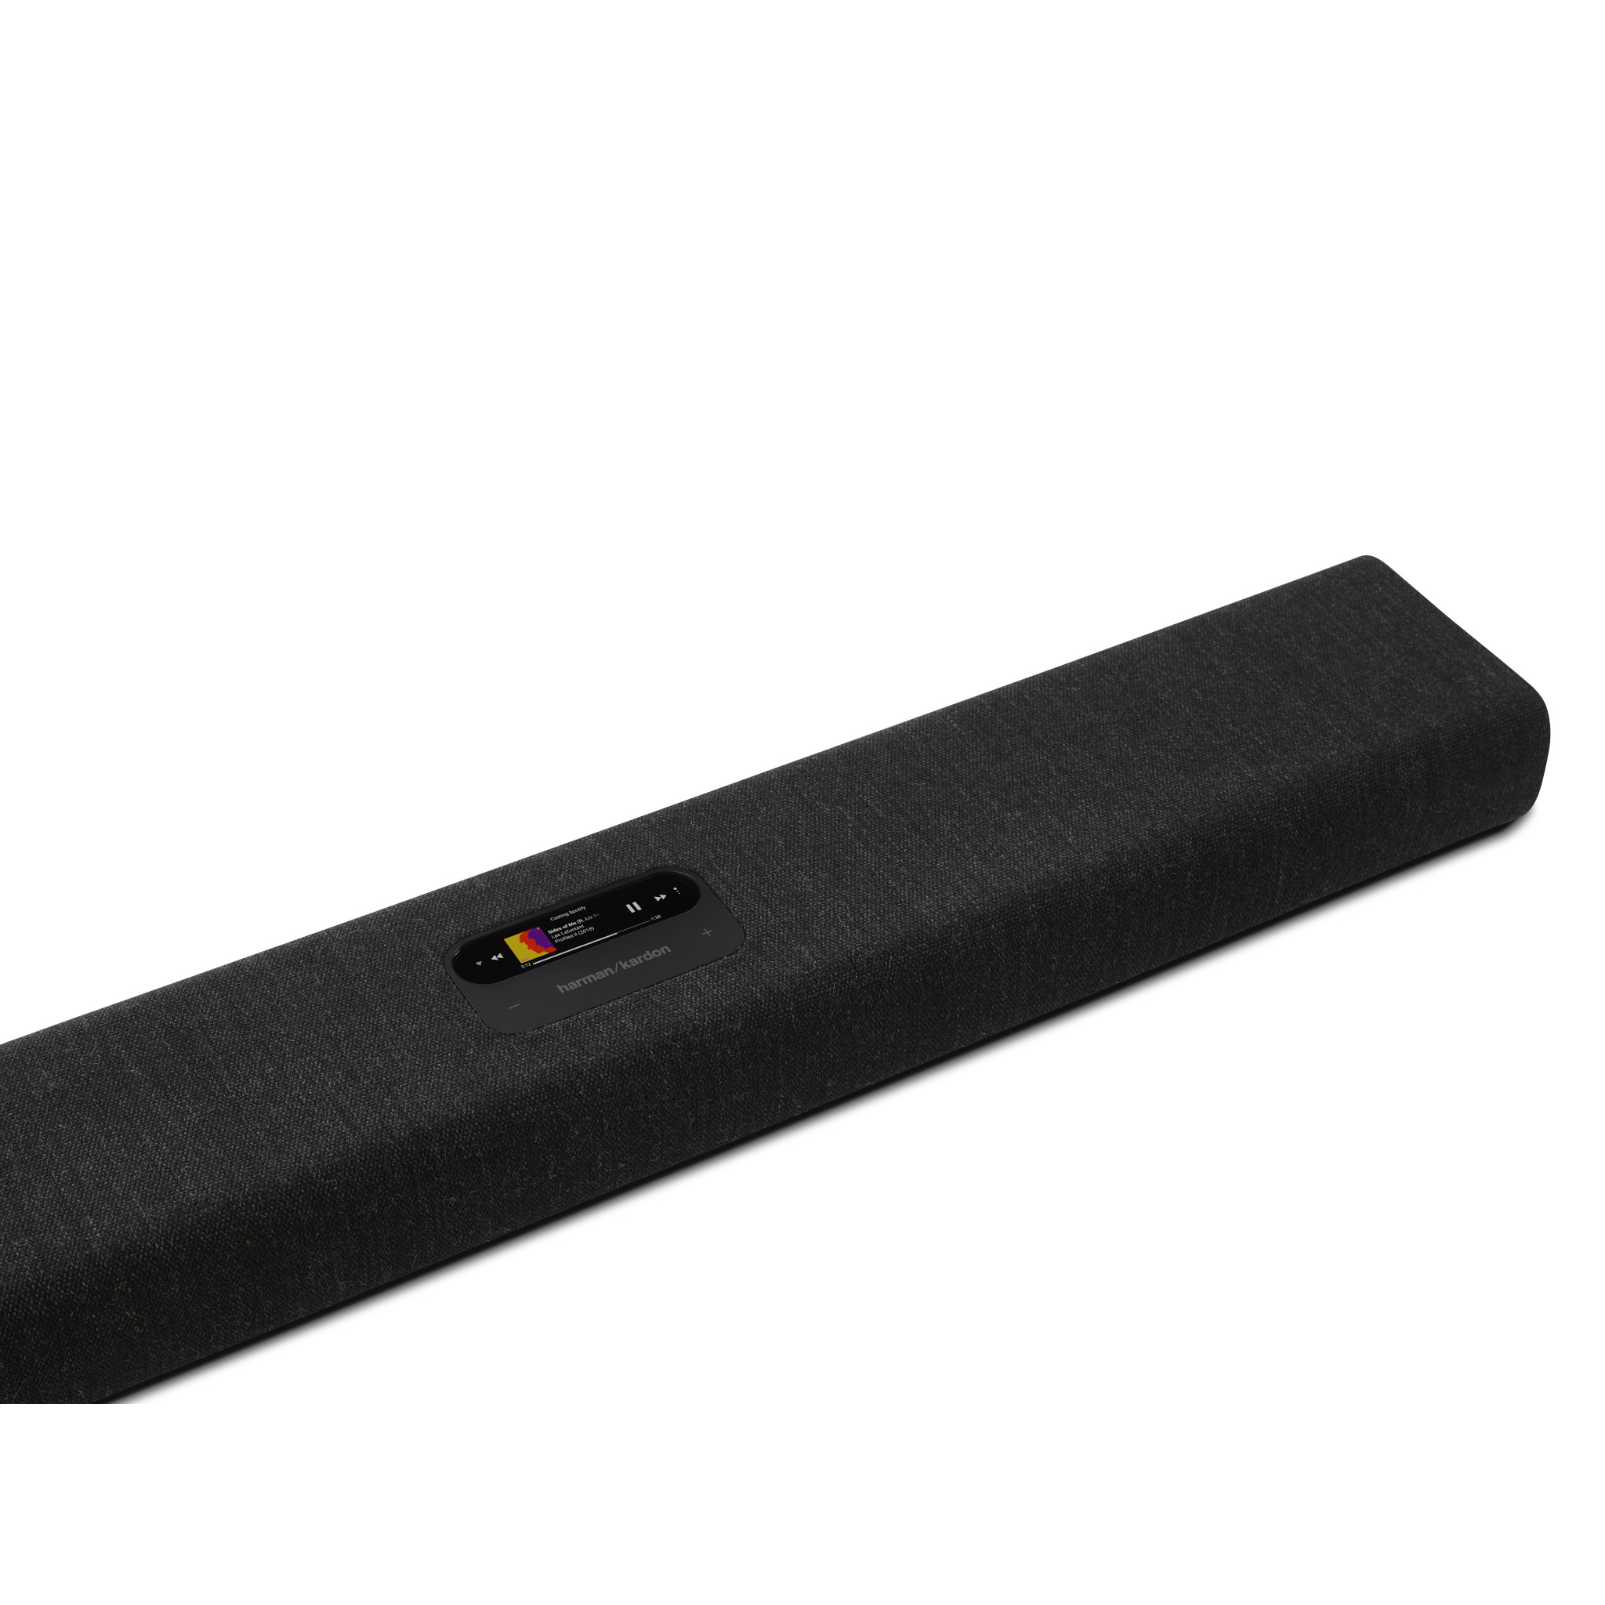 Harman Kardon Citation MultiBeam™ 700 - Black - The smartest, compact soundbar with MultiBeam™ surround sound - Detailshot 1